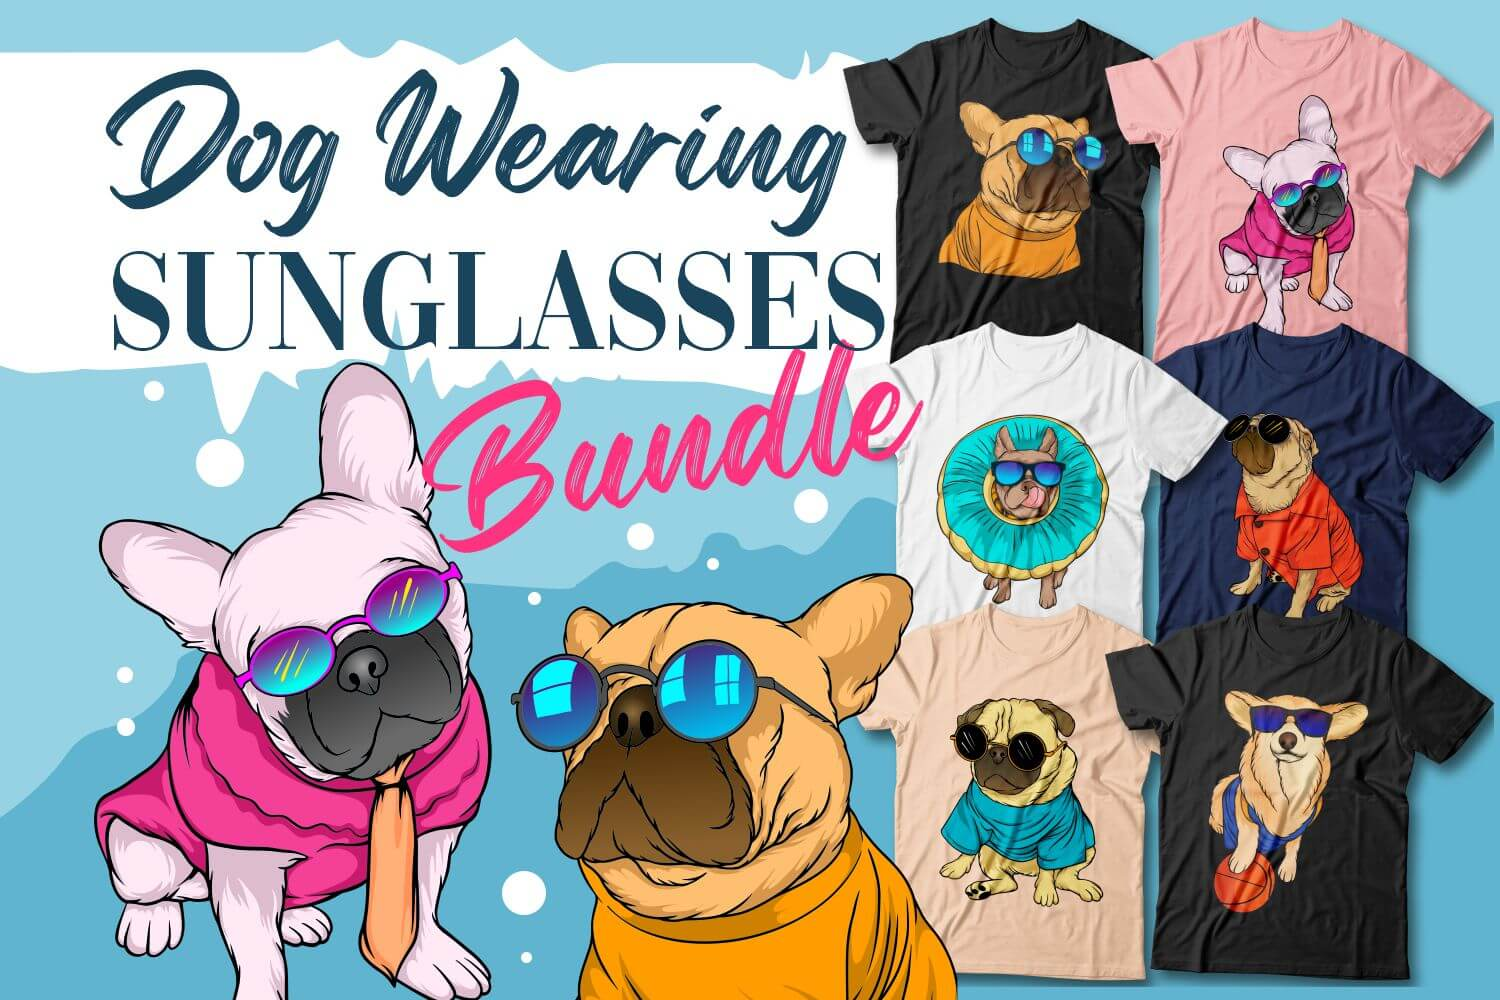 Dog Wearing Sunglasses Cover